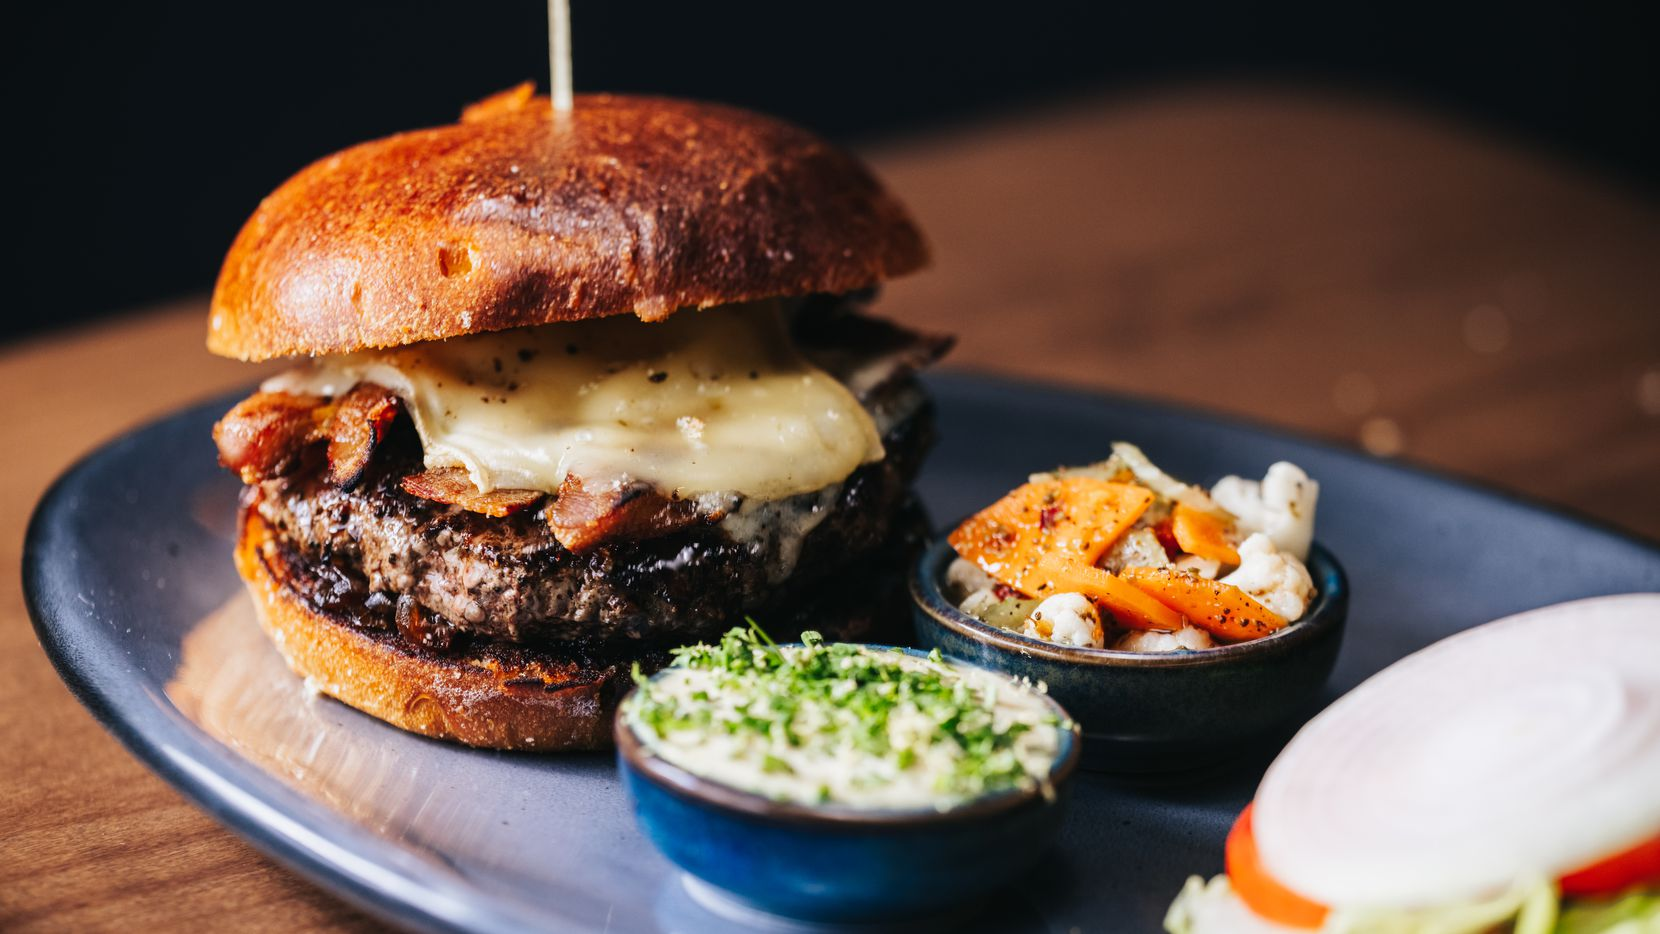 Ounce, a restaurant in downtown Dallas' AT&T Discovery District, will sell a burger created by chef Brian Zenner. Ounce is expected to open Dec. 16, 2020.